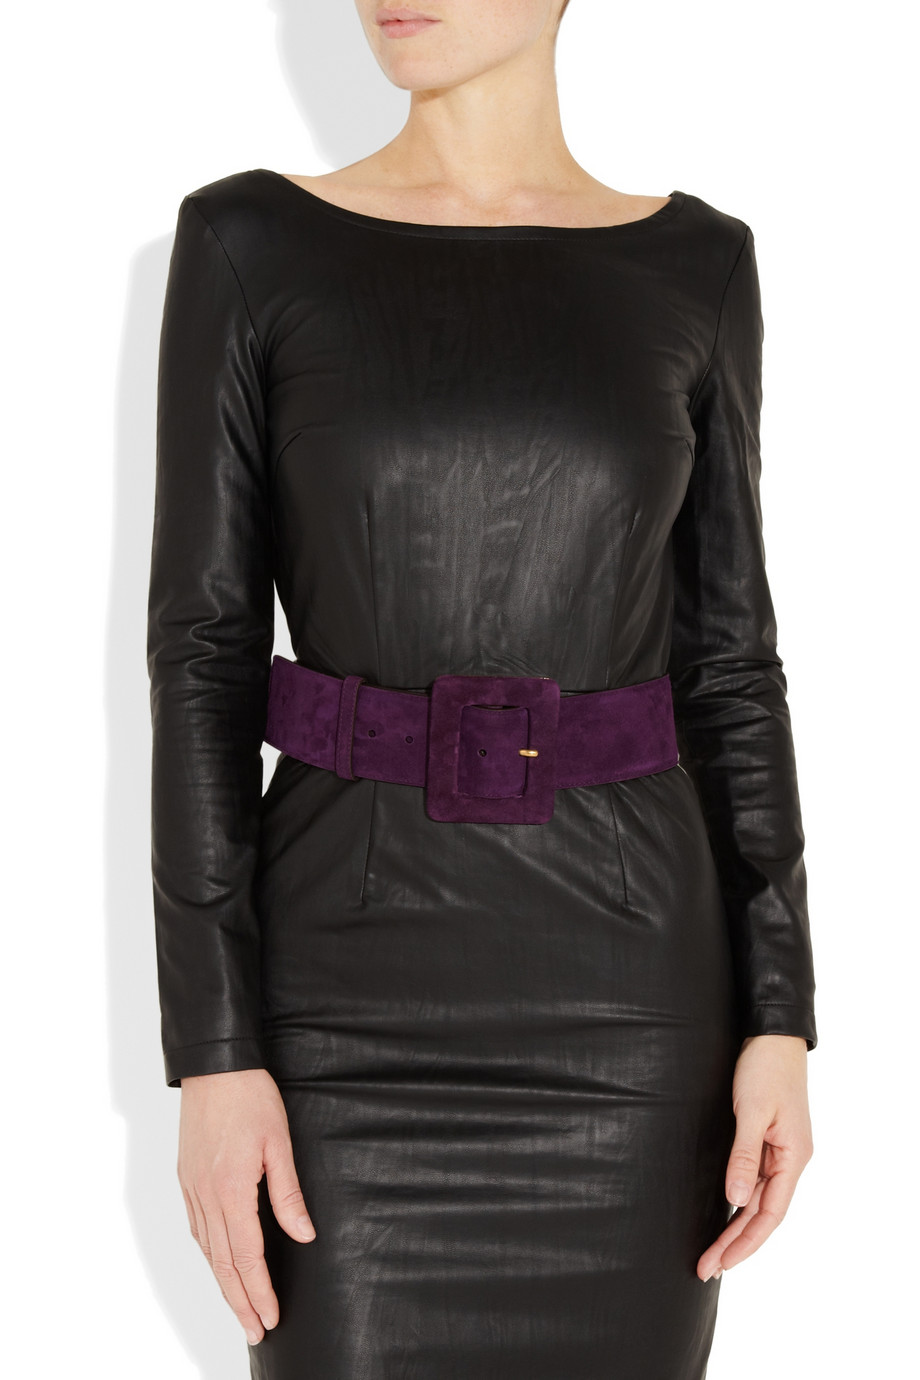 Saint Laurent Suede Waist Belt In Purple Lyst